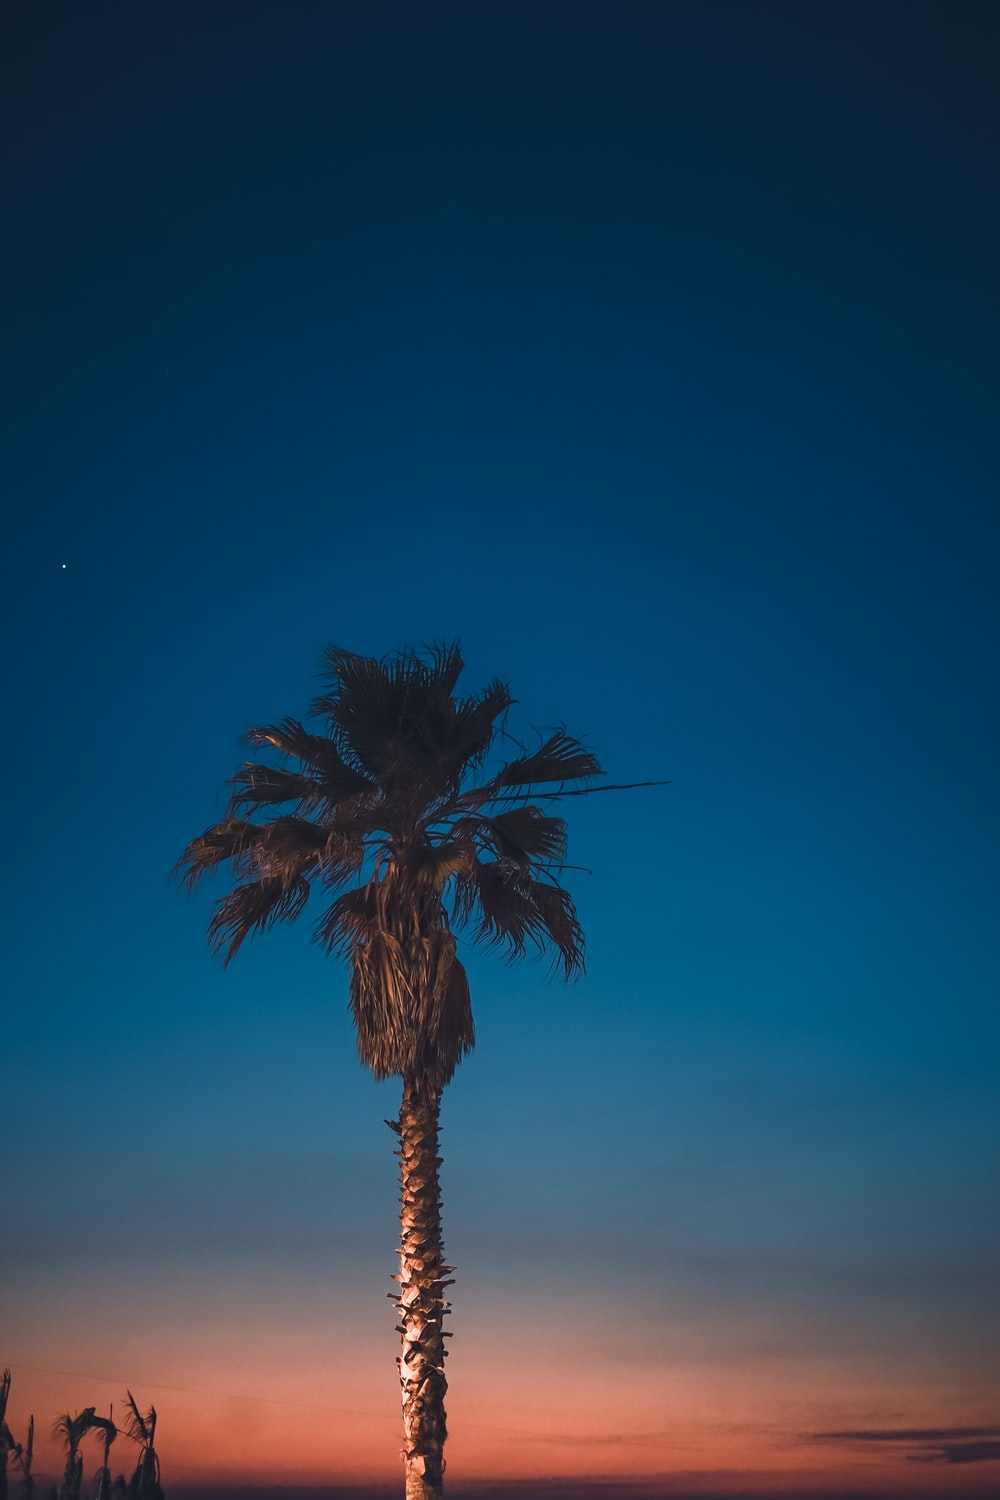 palm palm tree under blue sky during golden hour